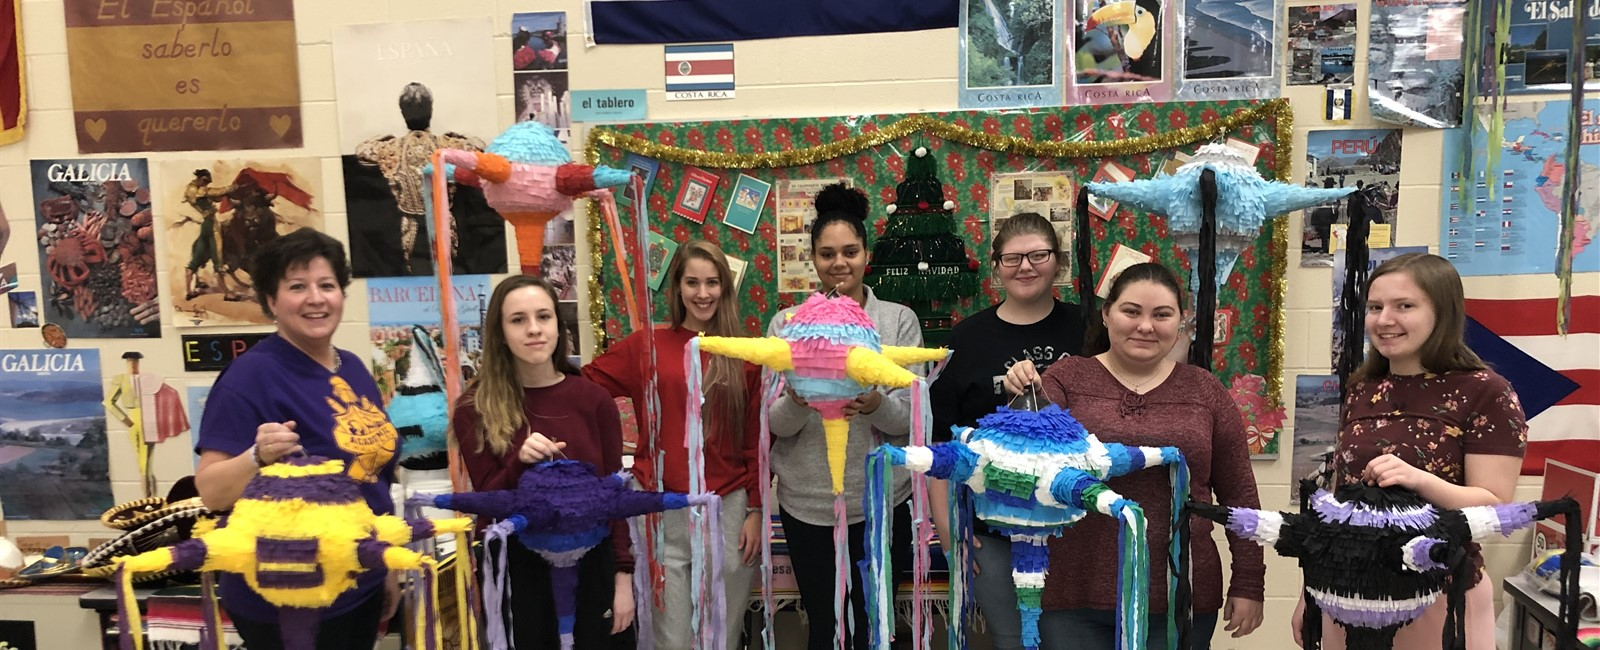 Spanish IIII created piñatas to celebrate Christmas, which is a tradition in Mexico.